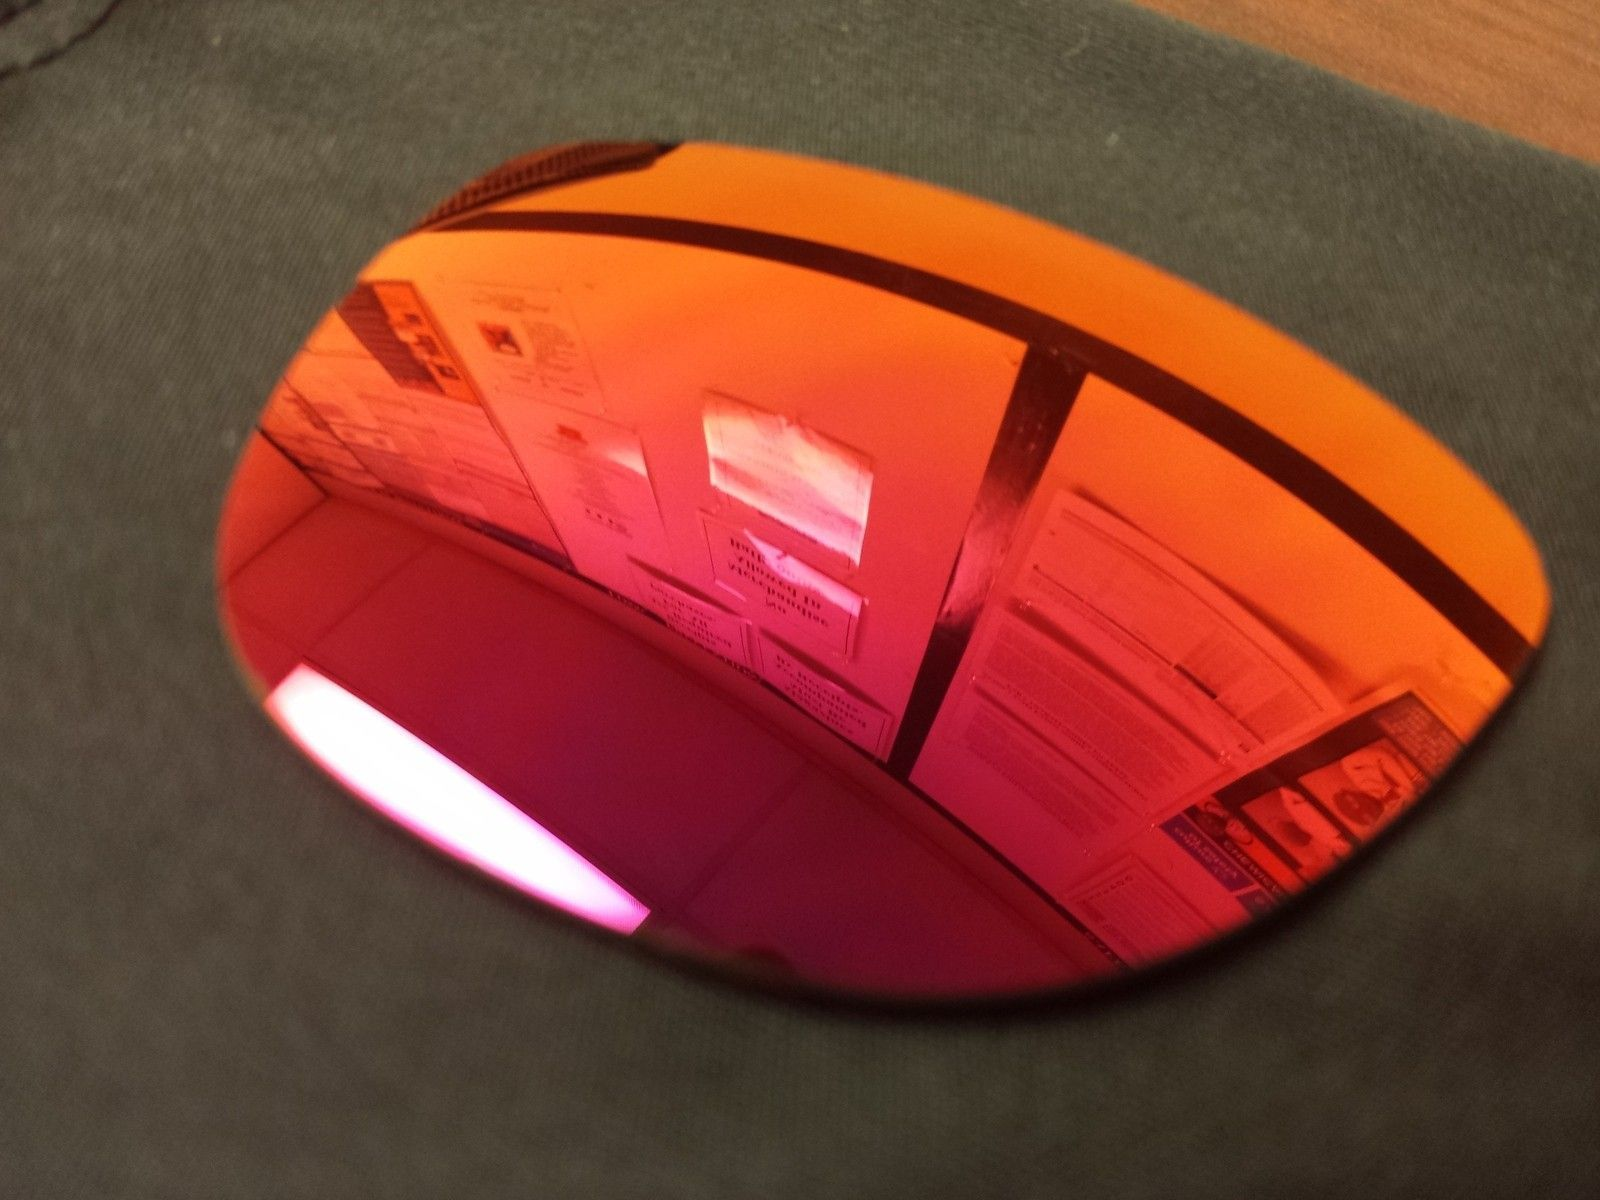 FSOT Ruby Frog Lenses - uploadfromtaptalk1435764676118.jpg